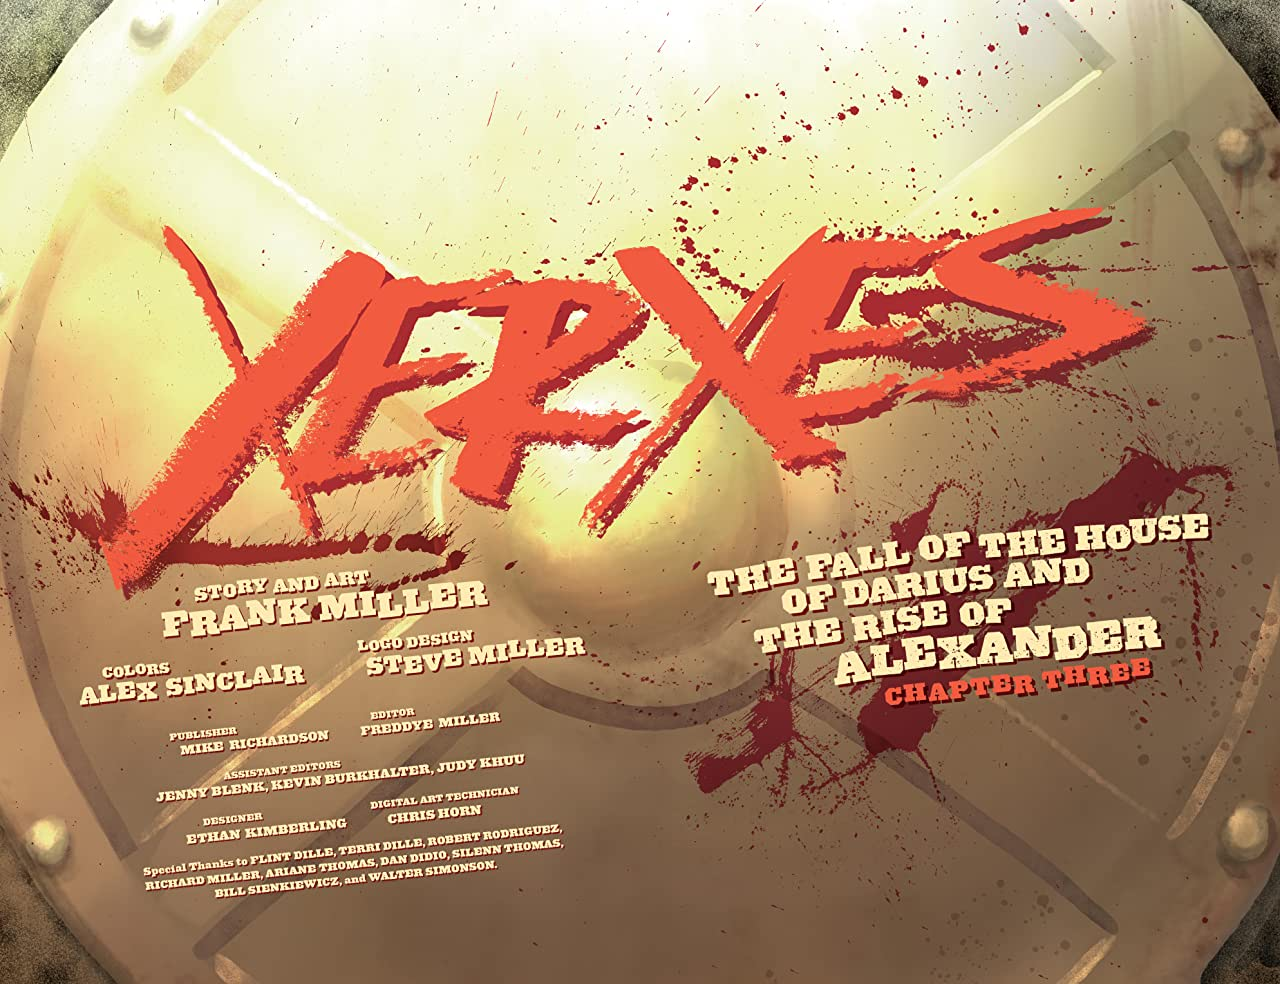 Xerxes: The Fall of the House of Darius and the Rise of Alexander #3